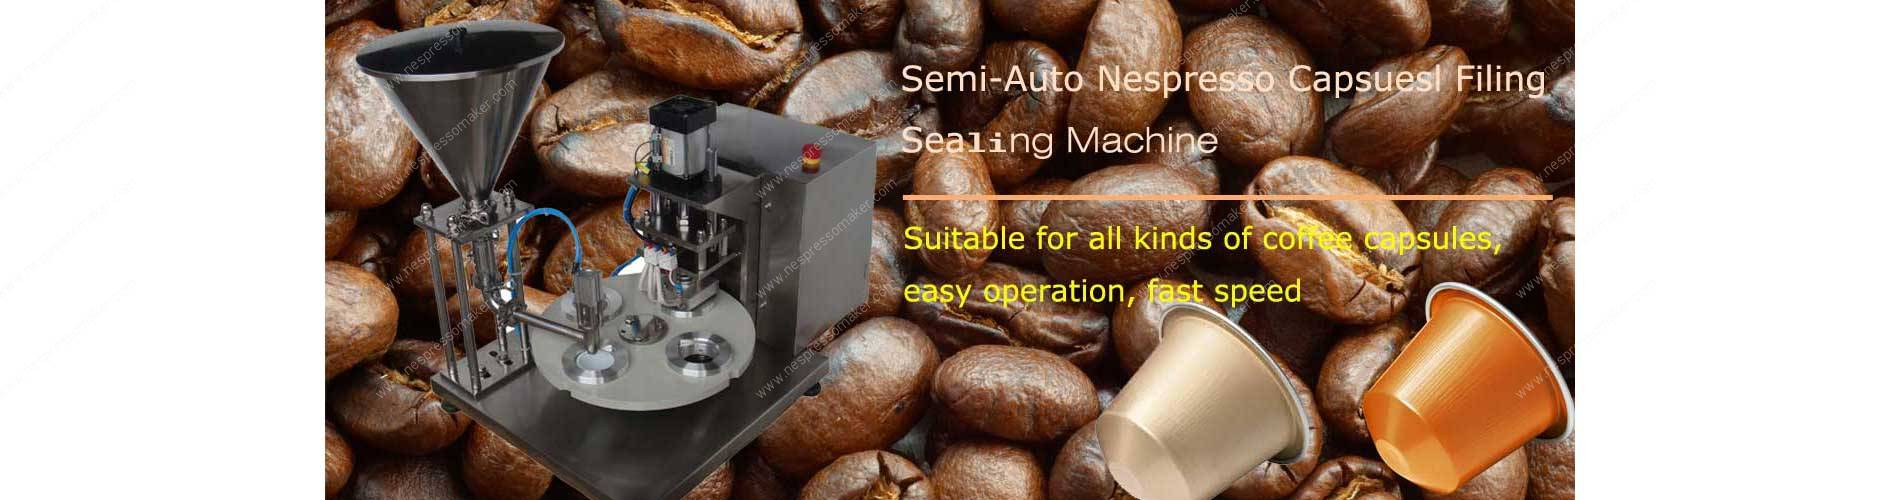 Sem-Automatic Nespresso Capsules Filling Sealing Machine